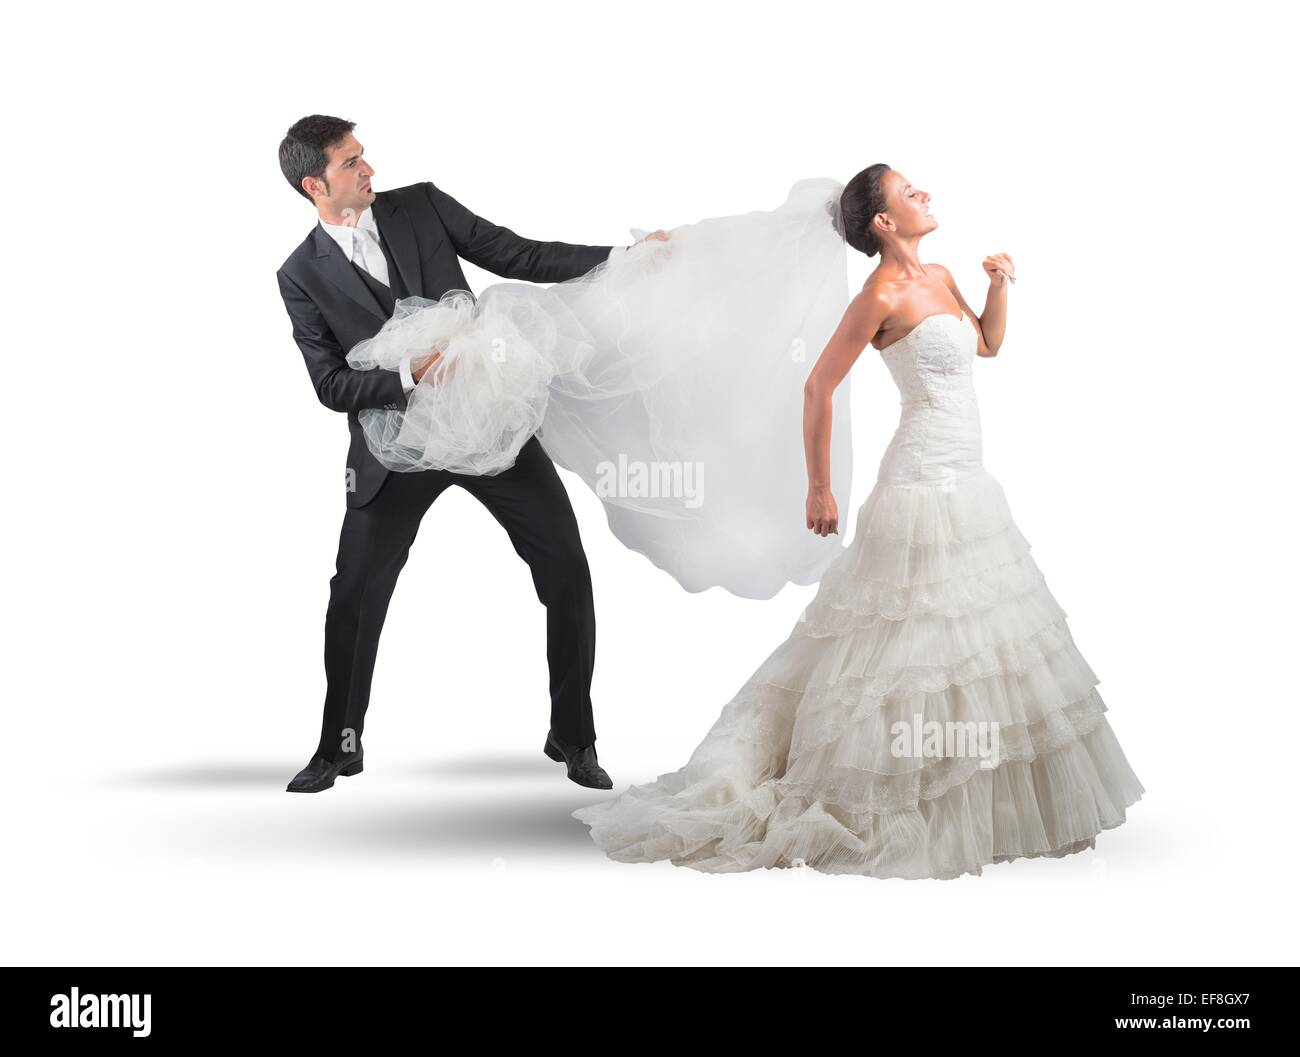 Bridal veil - Stock Image